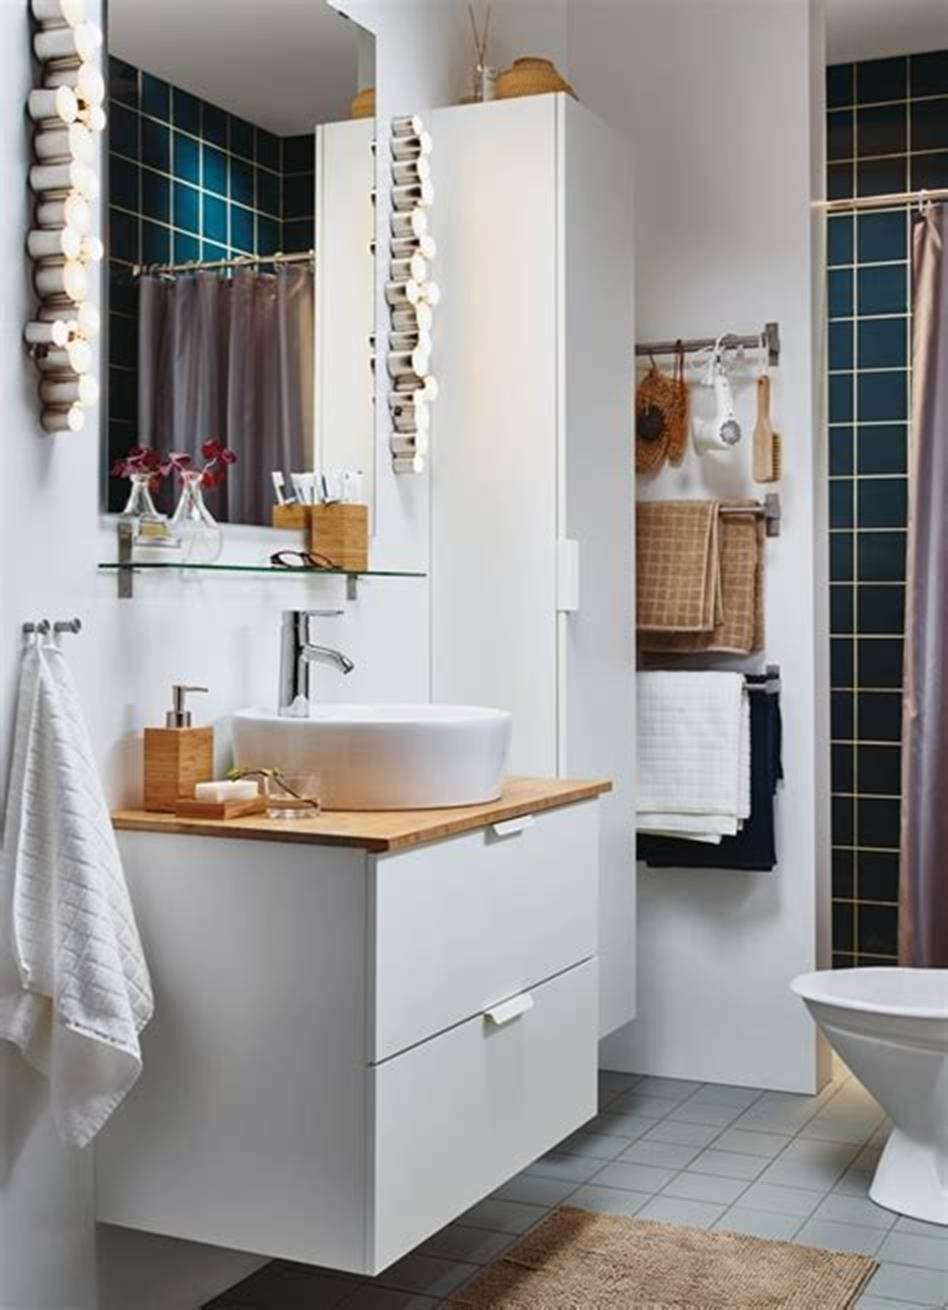 45 creative and inspiring small bathroom storage ideas on clever small apartment living organization bathroom ideas unique methods for an organized bathroom id=87916